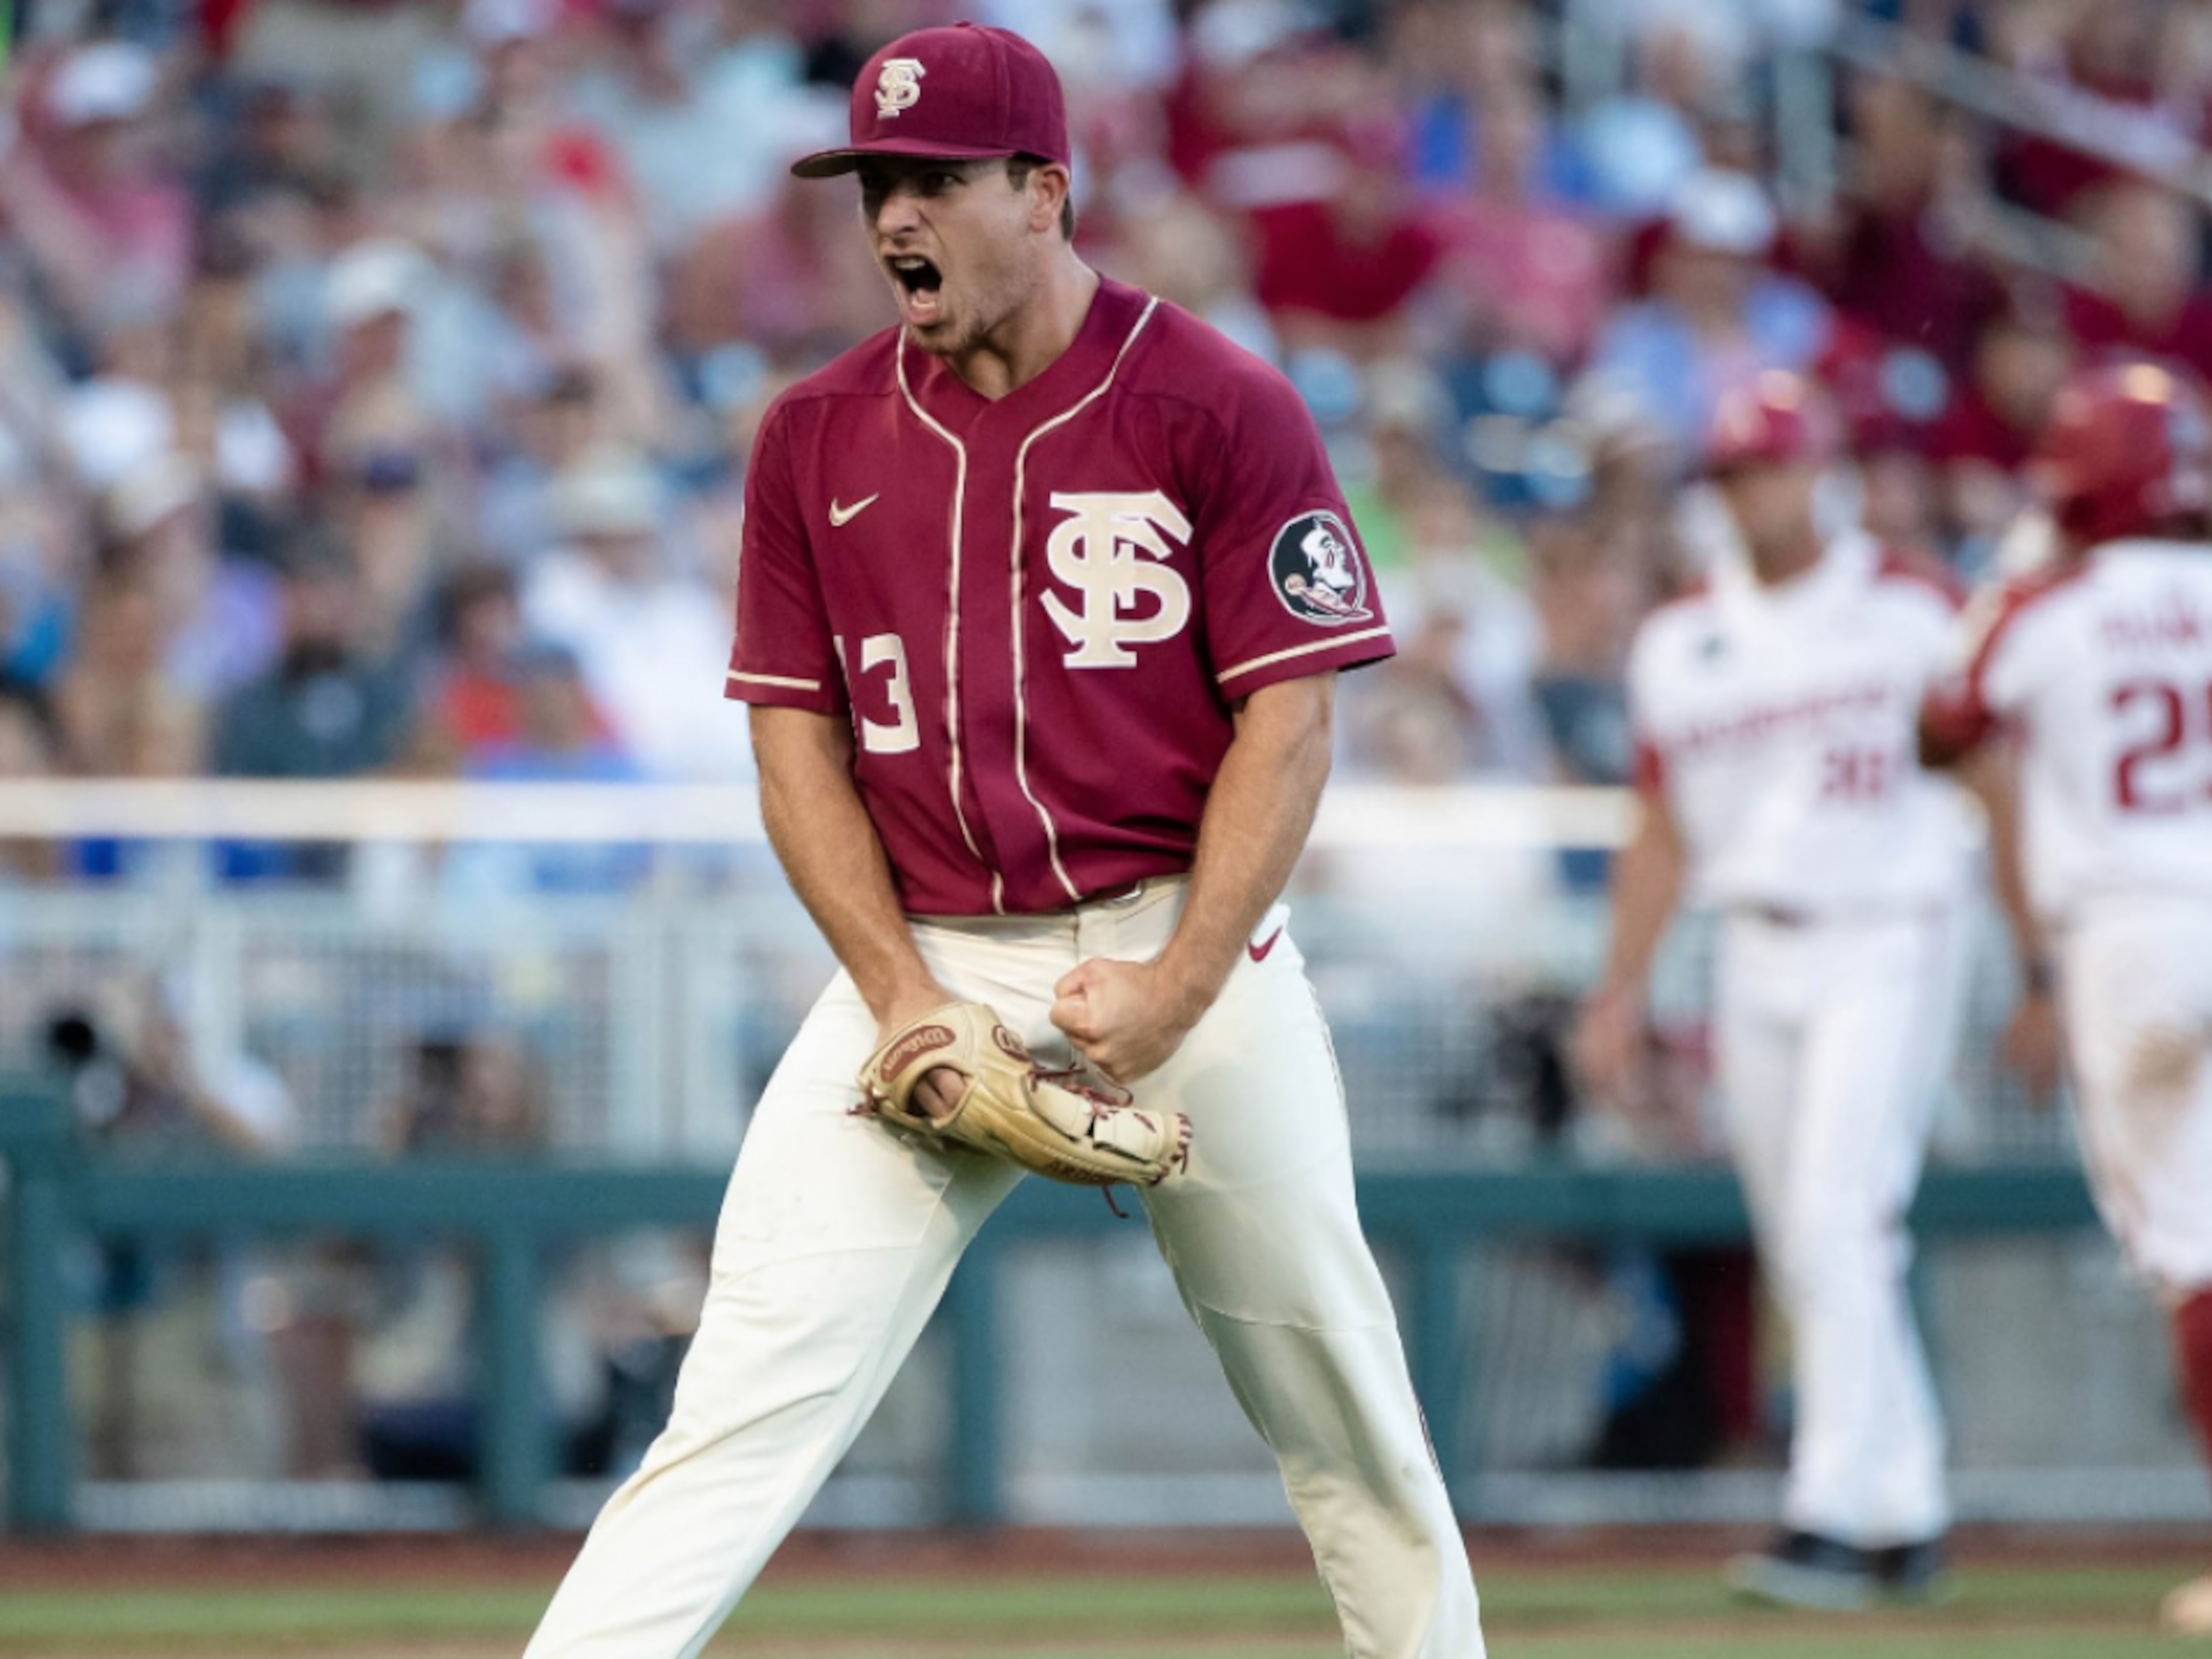 Florida State kicks off College World Series with 1-0 win over Arkansas